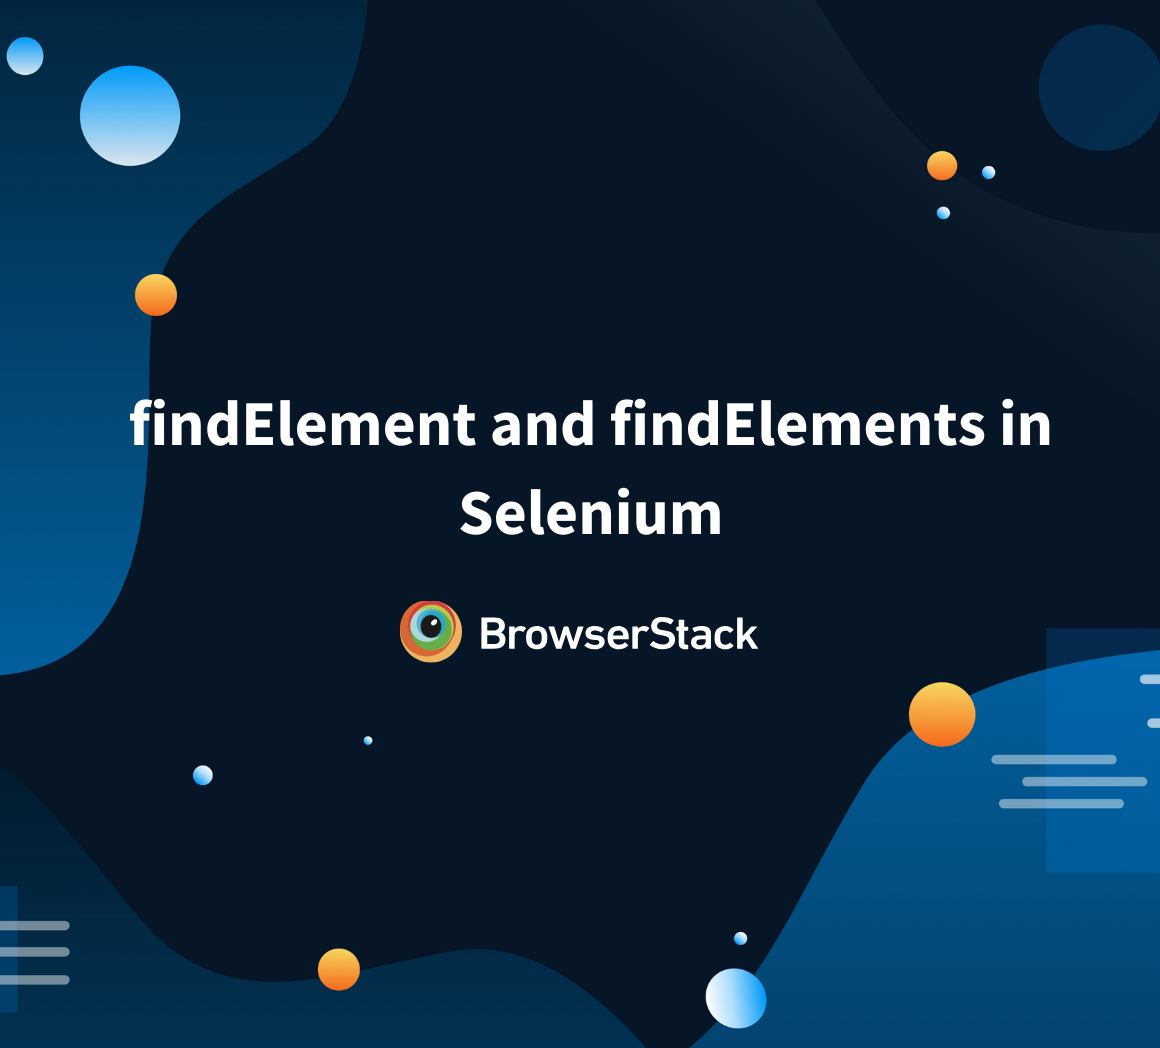 Find Element in Selenium